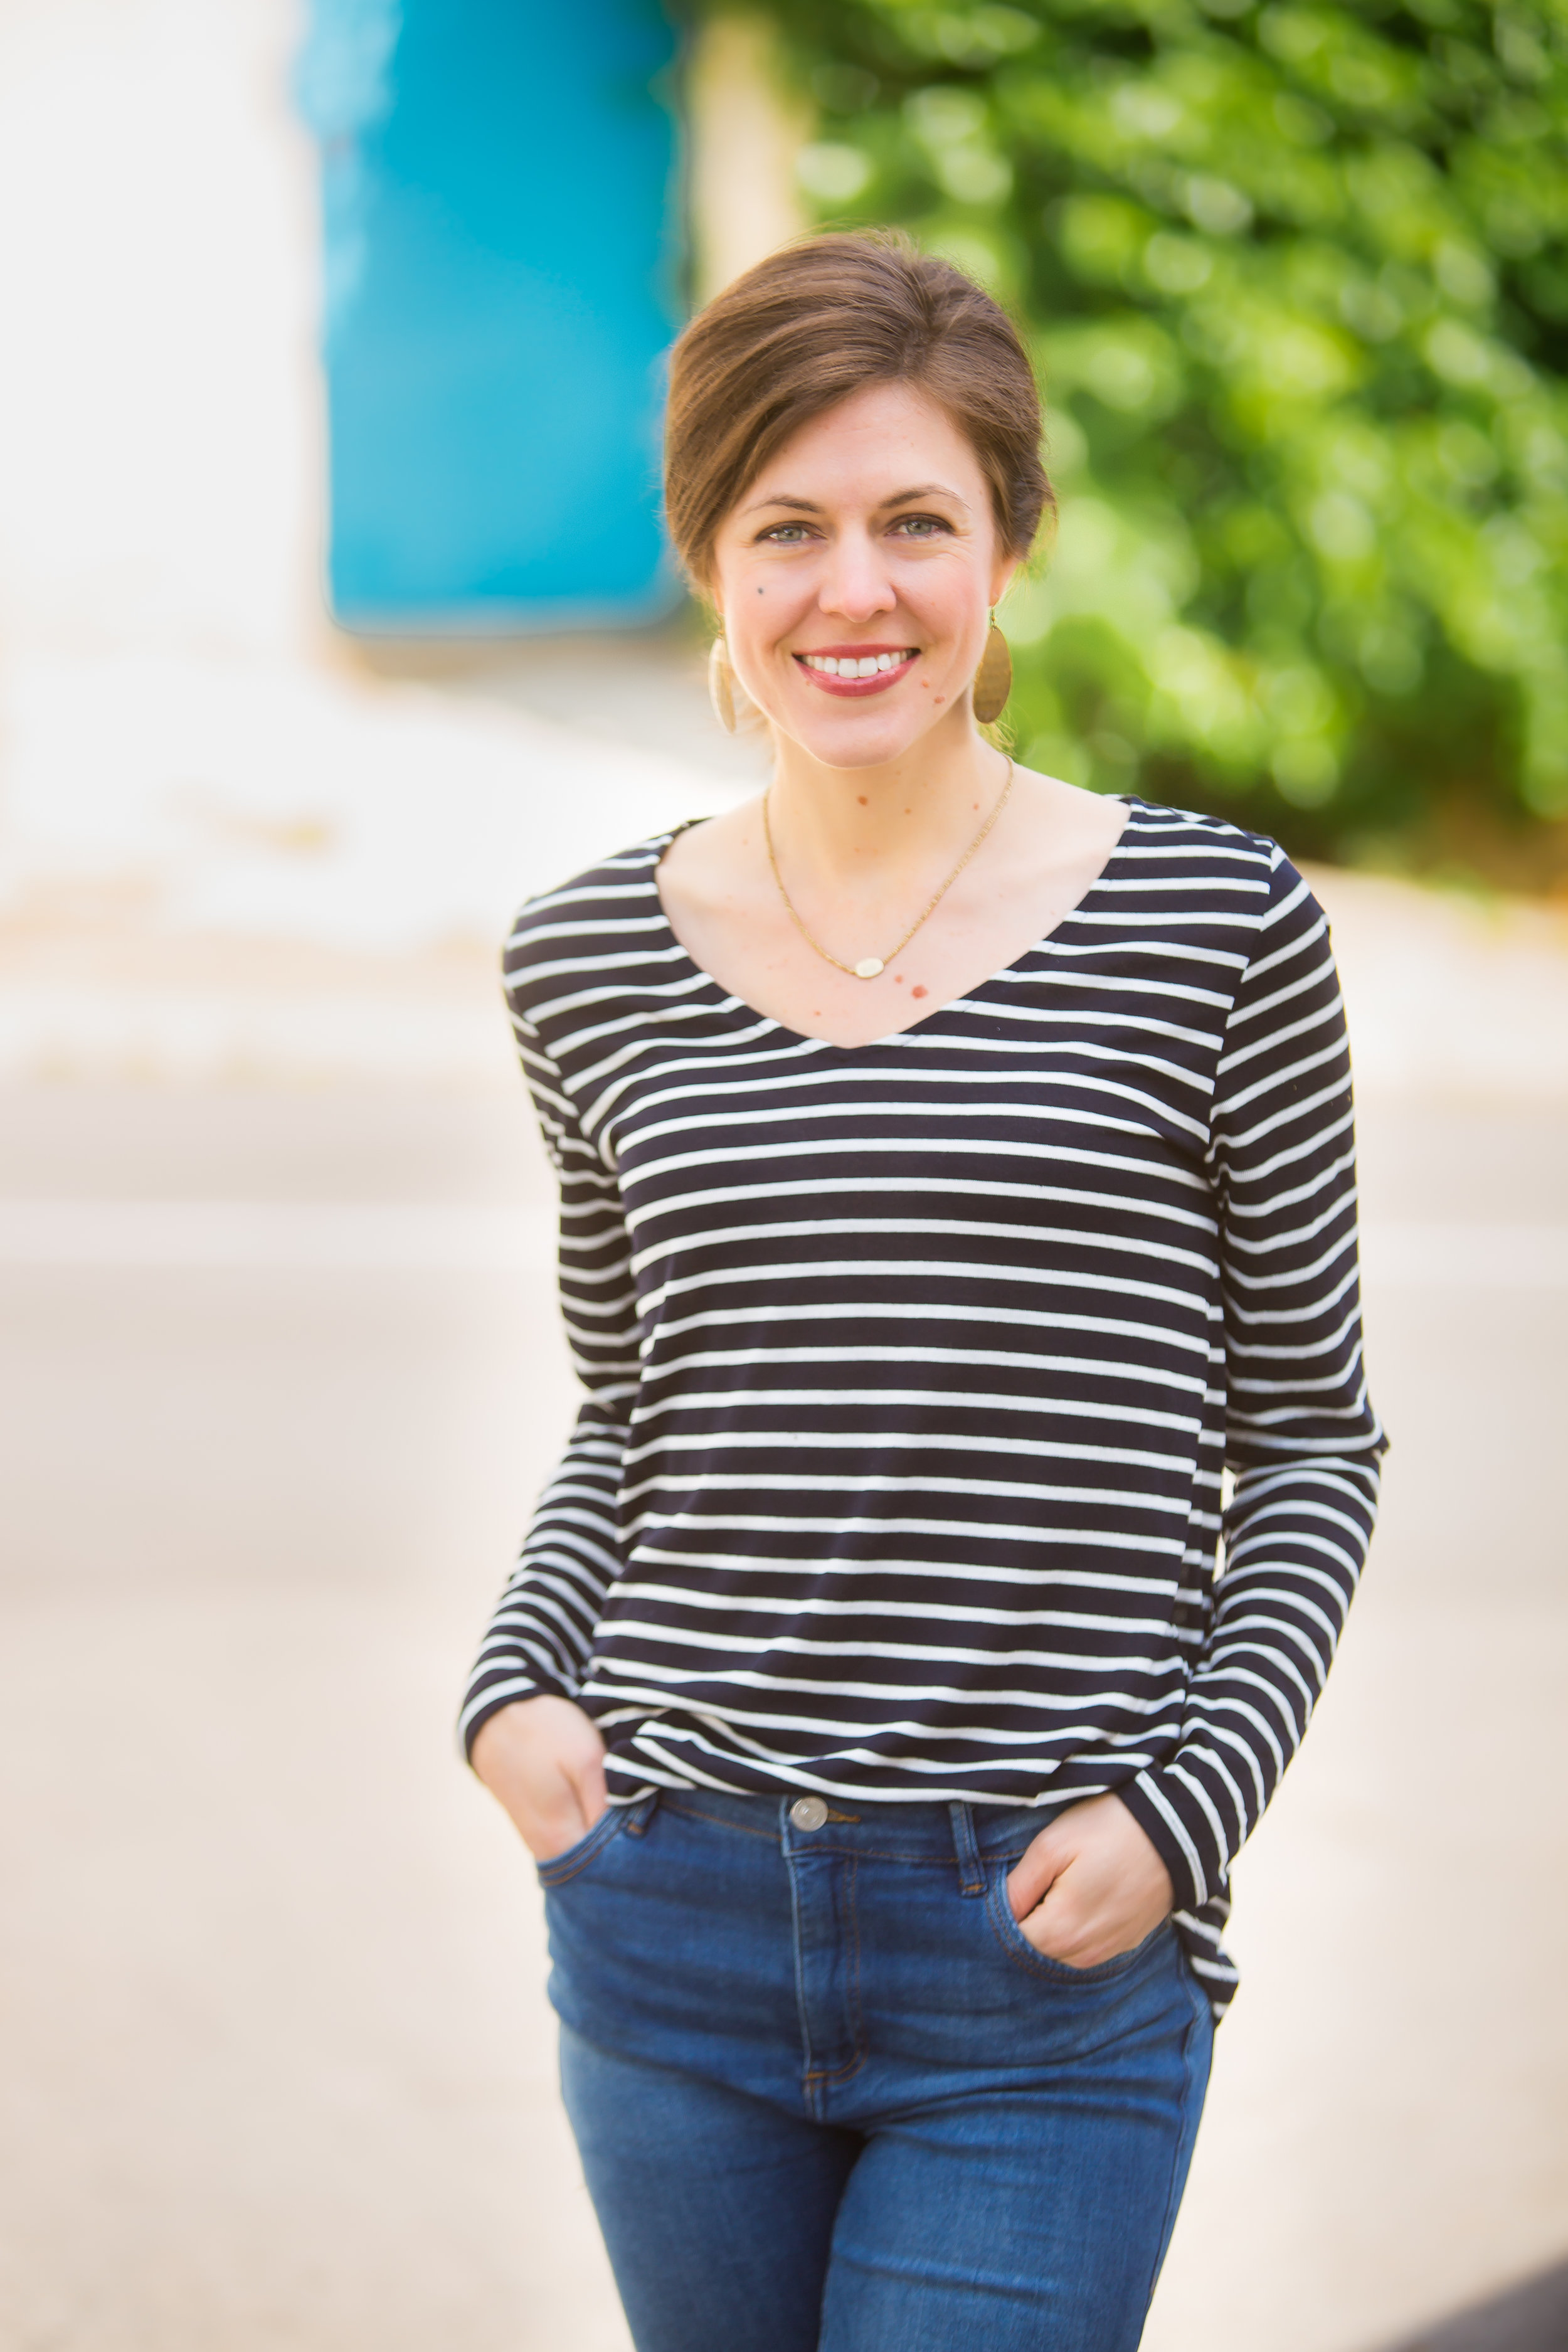 Hello & Welcome! - I'm Katie, an Integrative Nutrition Health Coach in Marin County and the San Francisco Bay Area. Whole Nourishment is a space where you'll find inspiration to cook simple, plant-forward, whole food meals and live well! Get started.